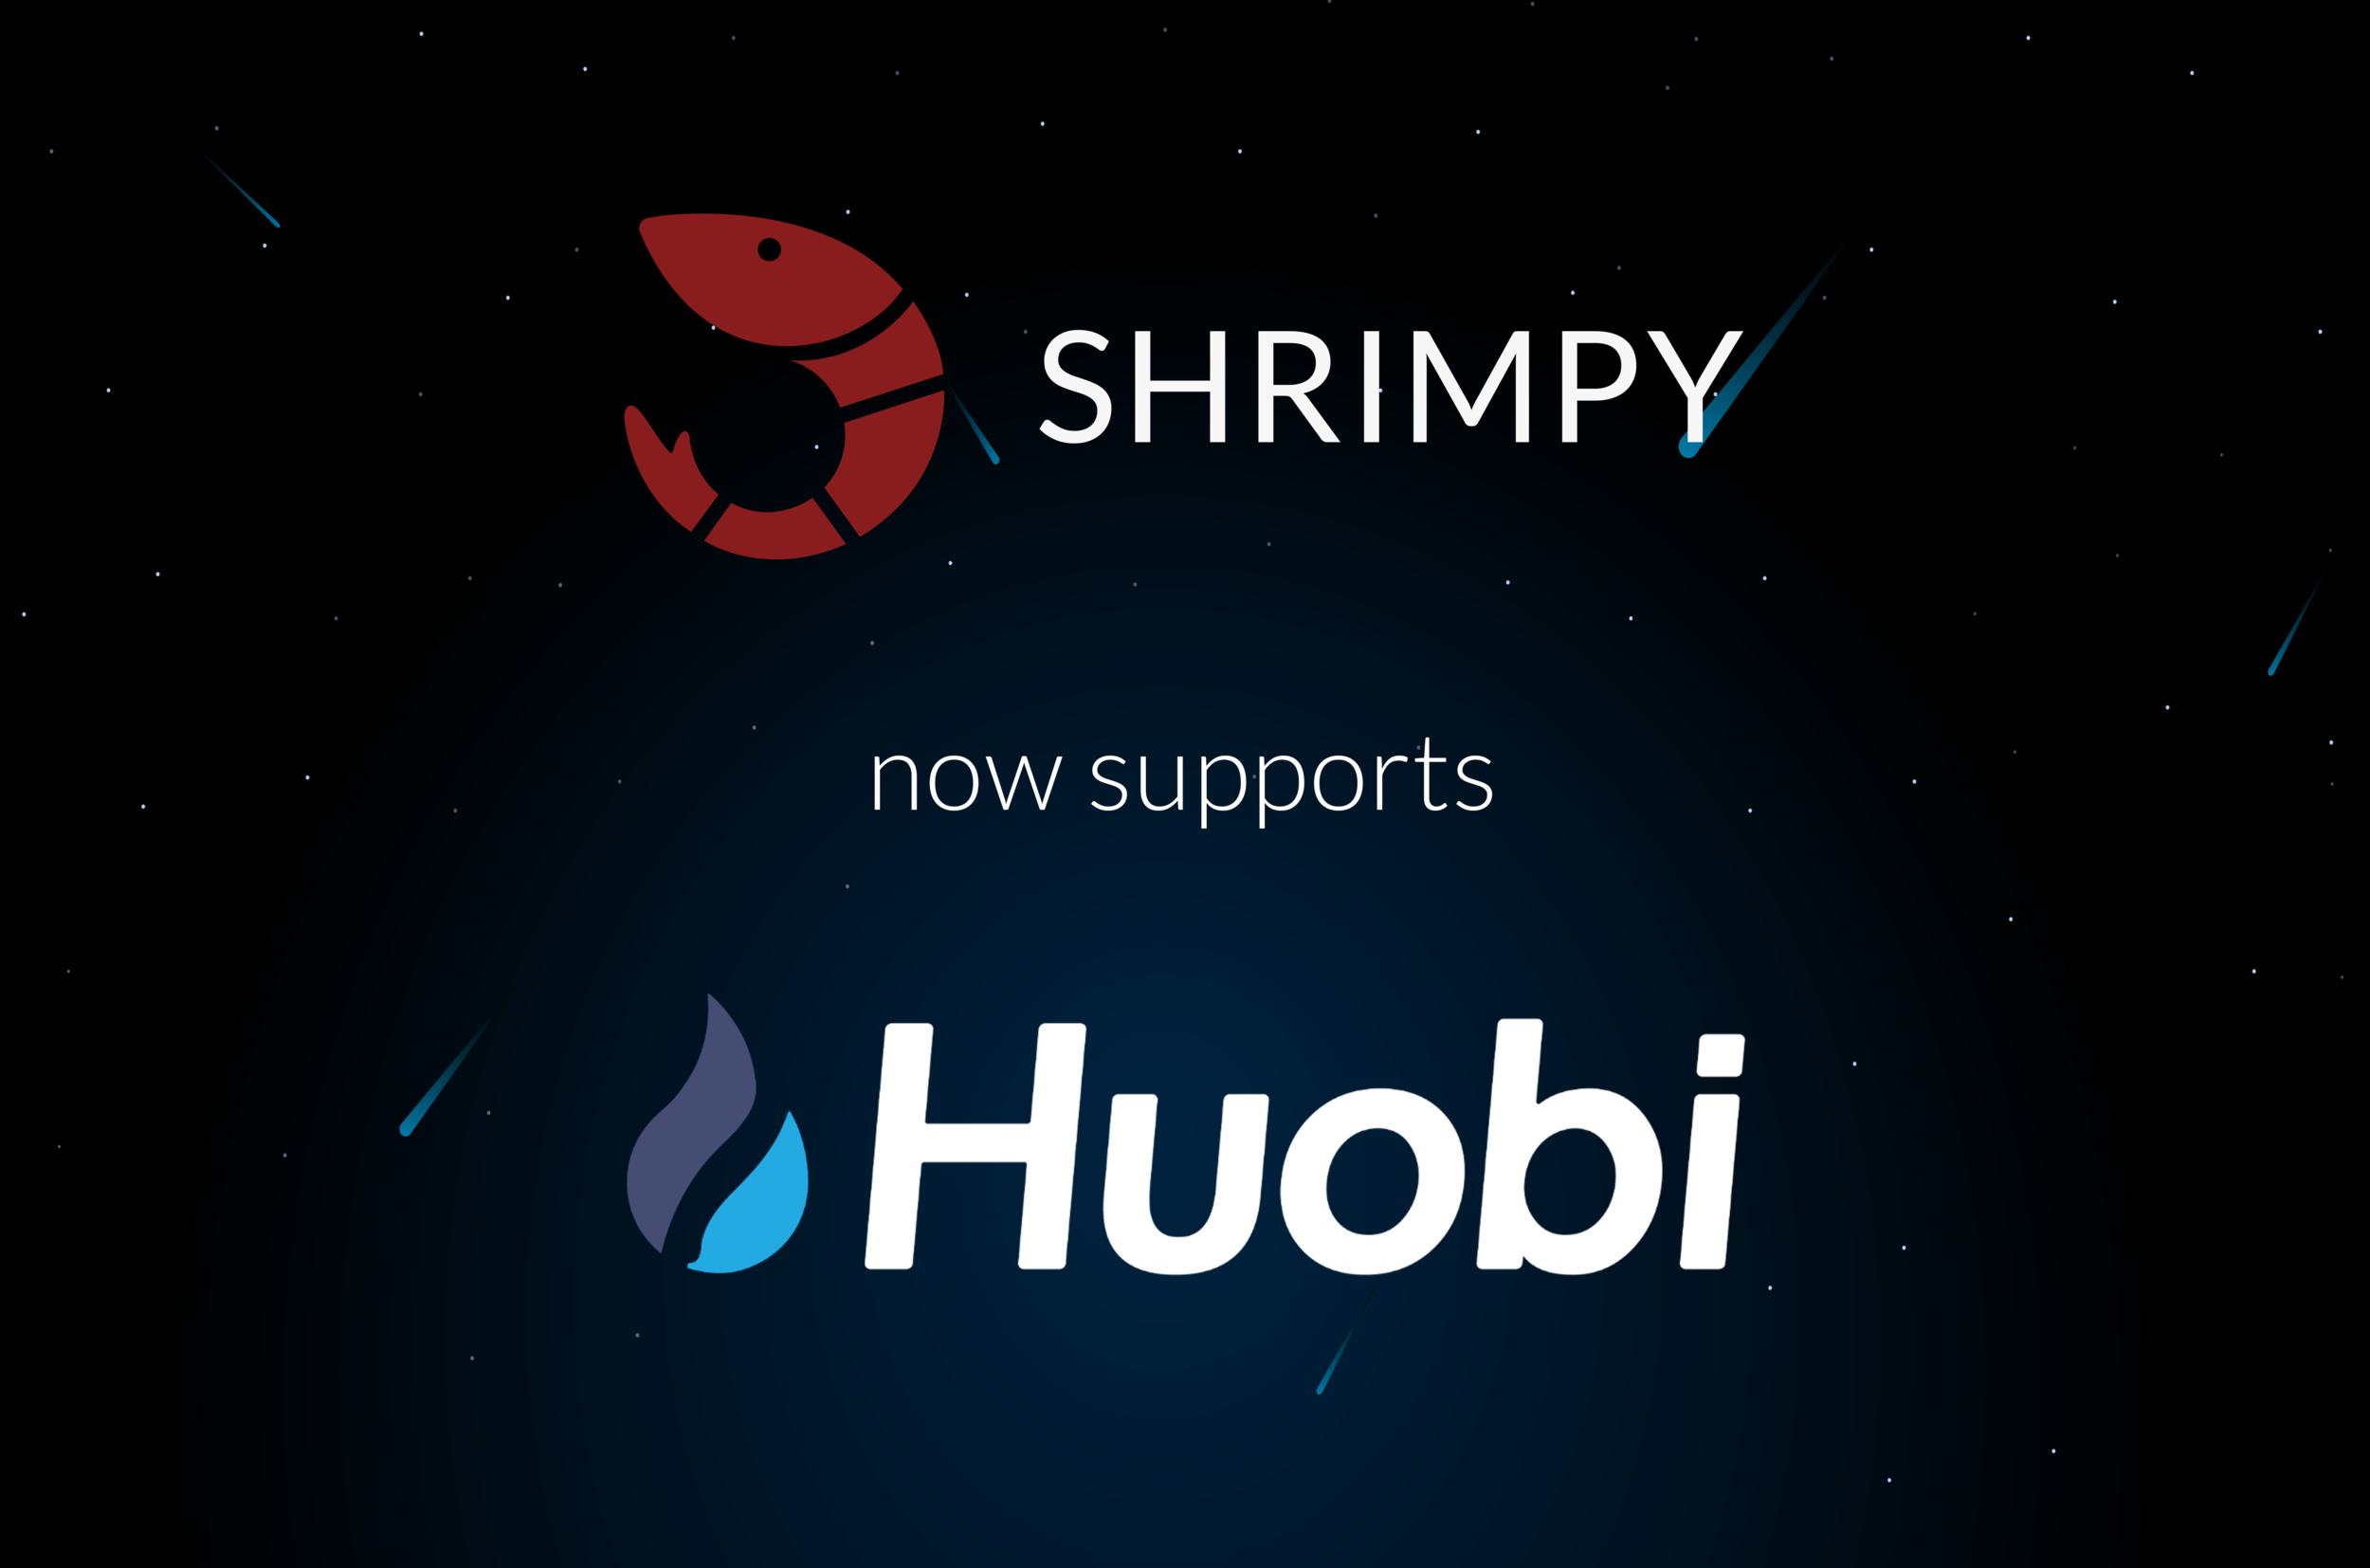 shrimpy-supports-huobi.png